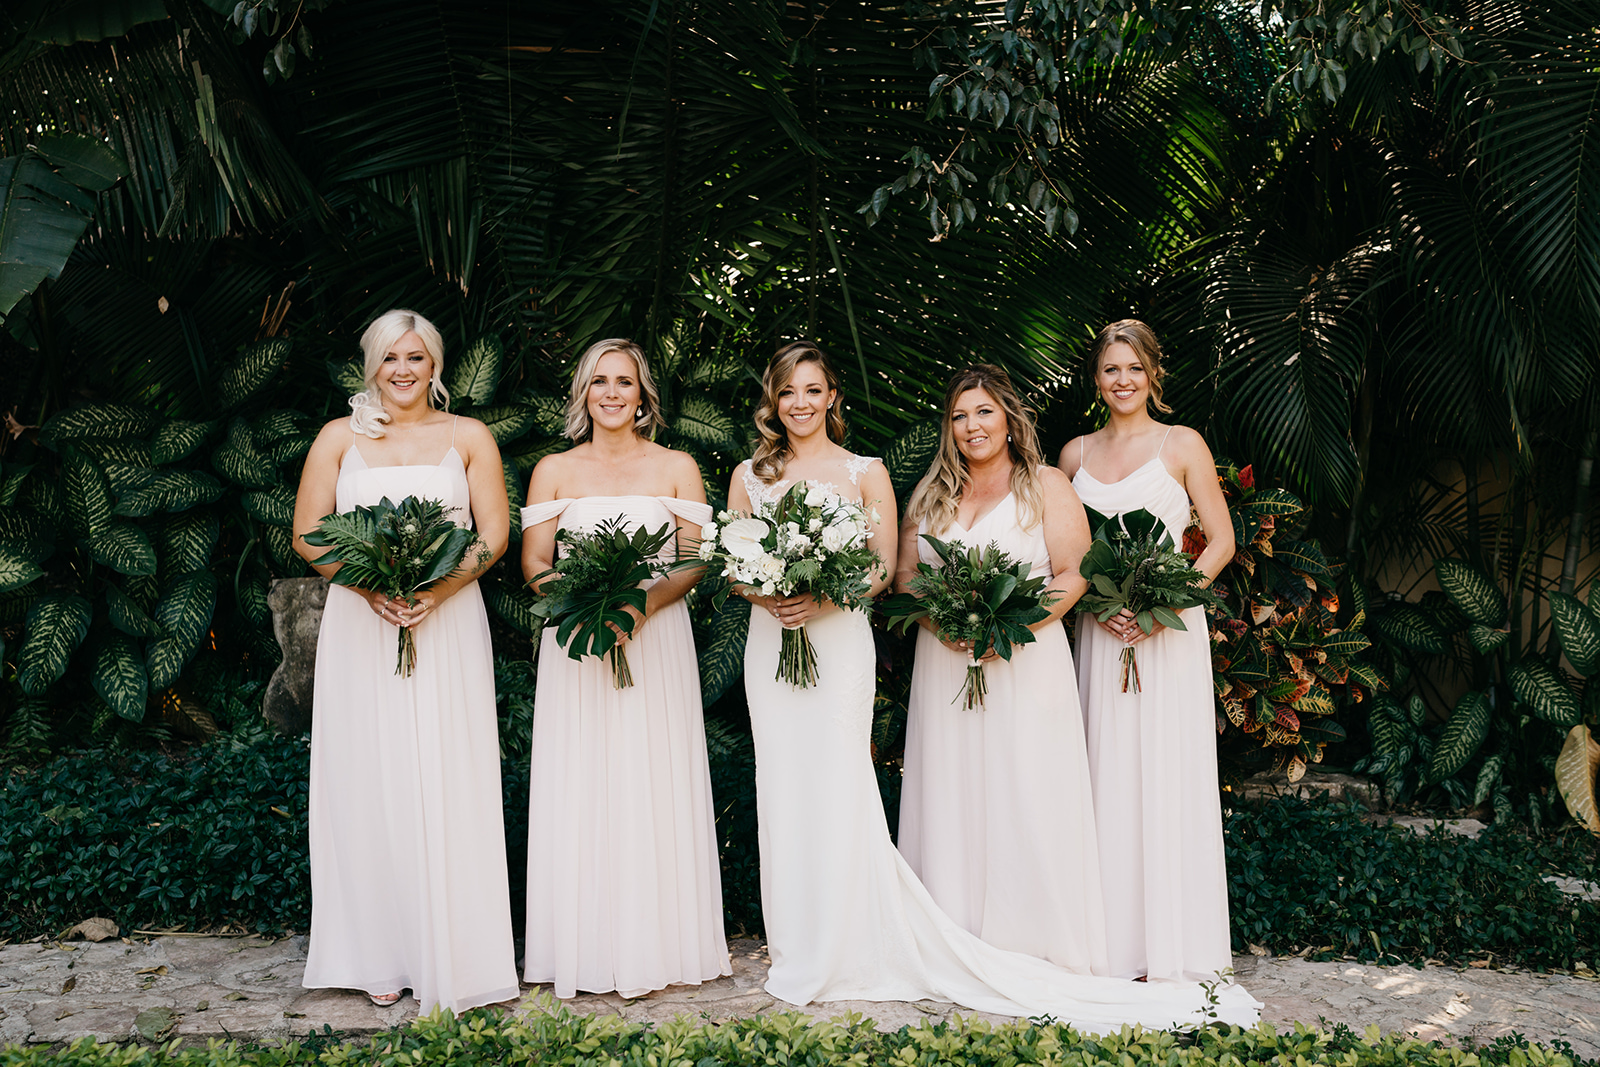 Photo Credit:  The Times We Have Photography   Planning:  Mar Weddings   Videography:  Red Carpet Films   Makeup only provided by Jenn Chivers Freelance